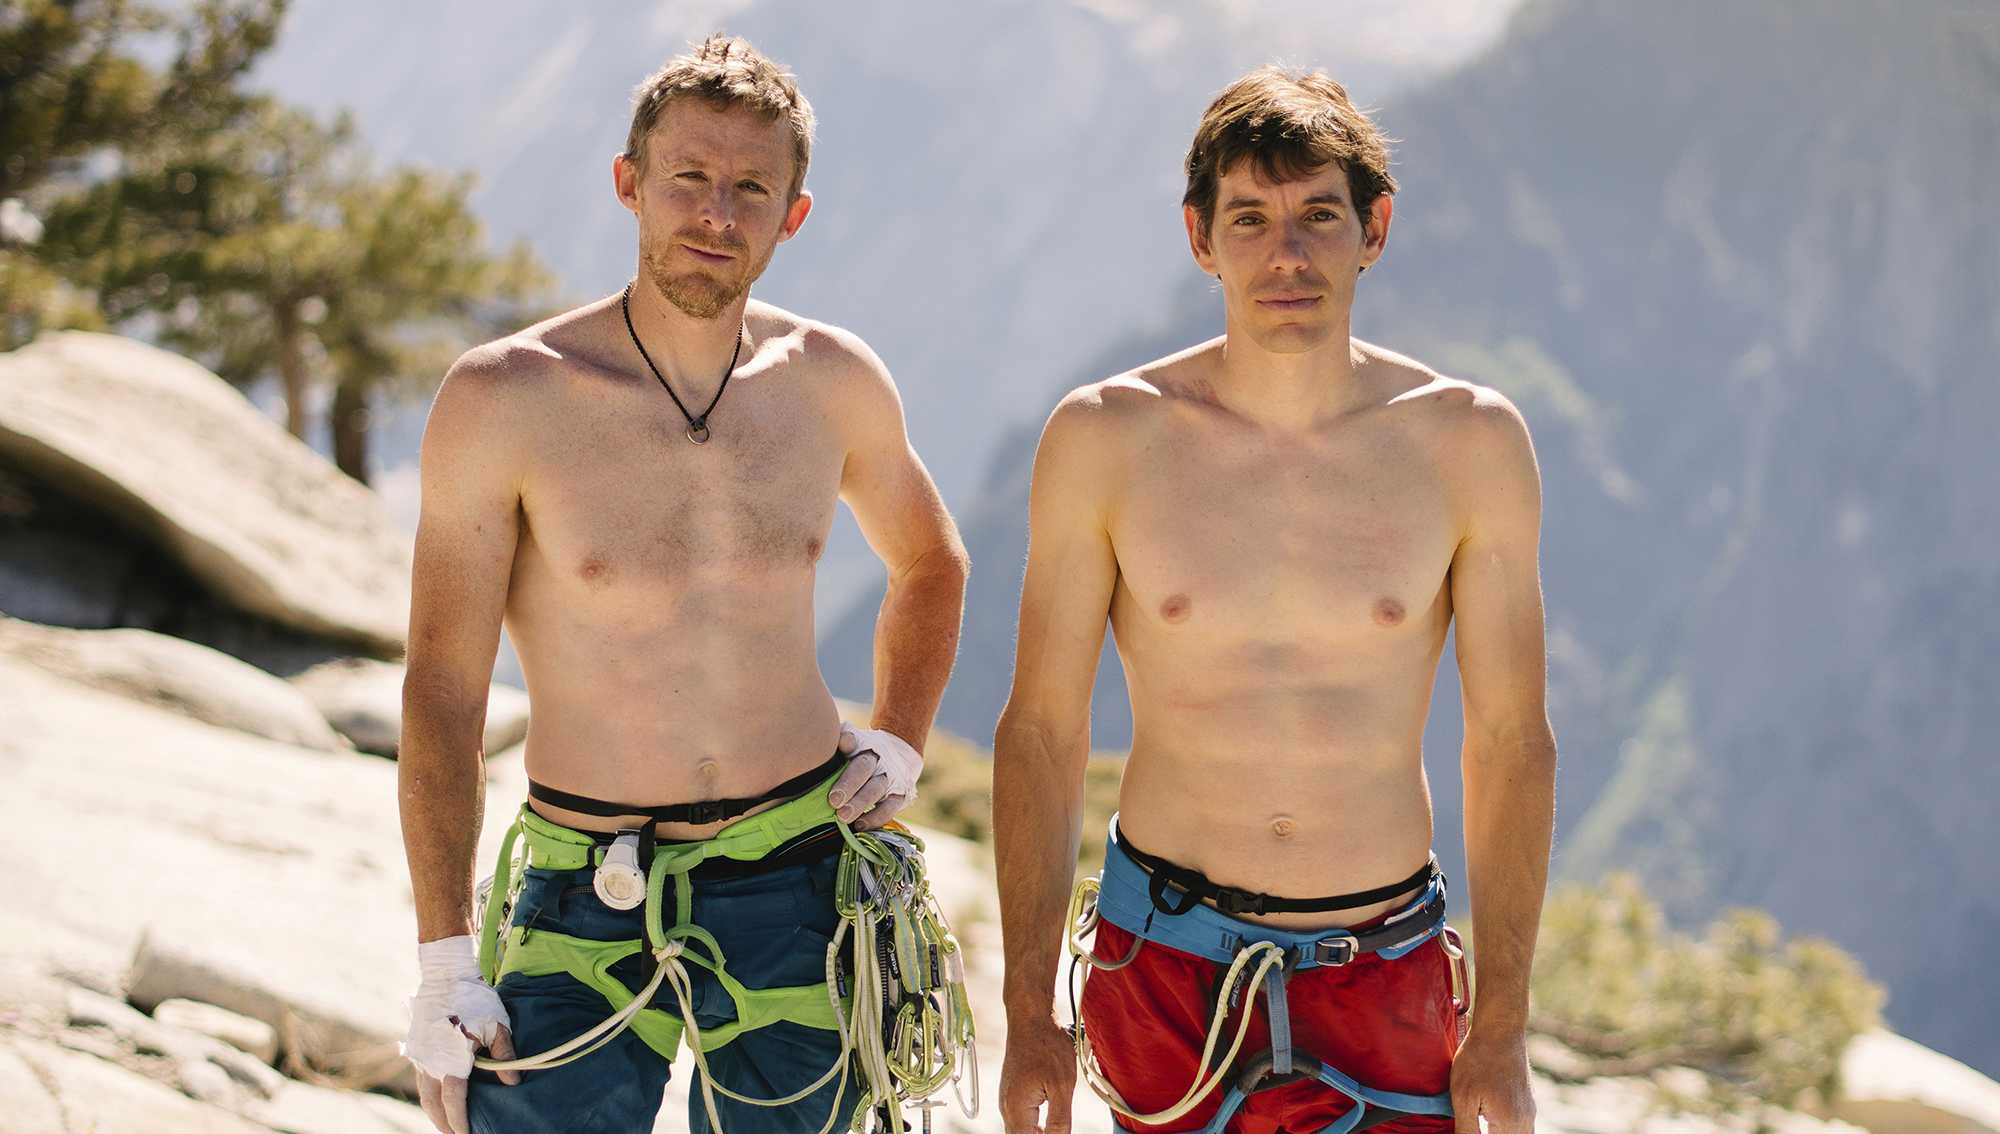 In this June 3, 2018 photo provided by Corey Rich, Alex Honnold, right, and Tommy Caldwell pose for a portrait at the top of El Capitan in Yosemite National Park, Calif. Days after two of the world's most celebrated rock climbers twice set astonishingly fast records on the biggest wall in Yosemite National Park, they did it again Wednesday, June 6, 2018, breaking a mark compared with track's four-minute mile.